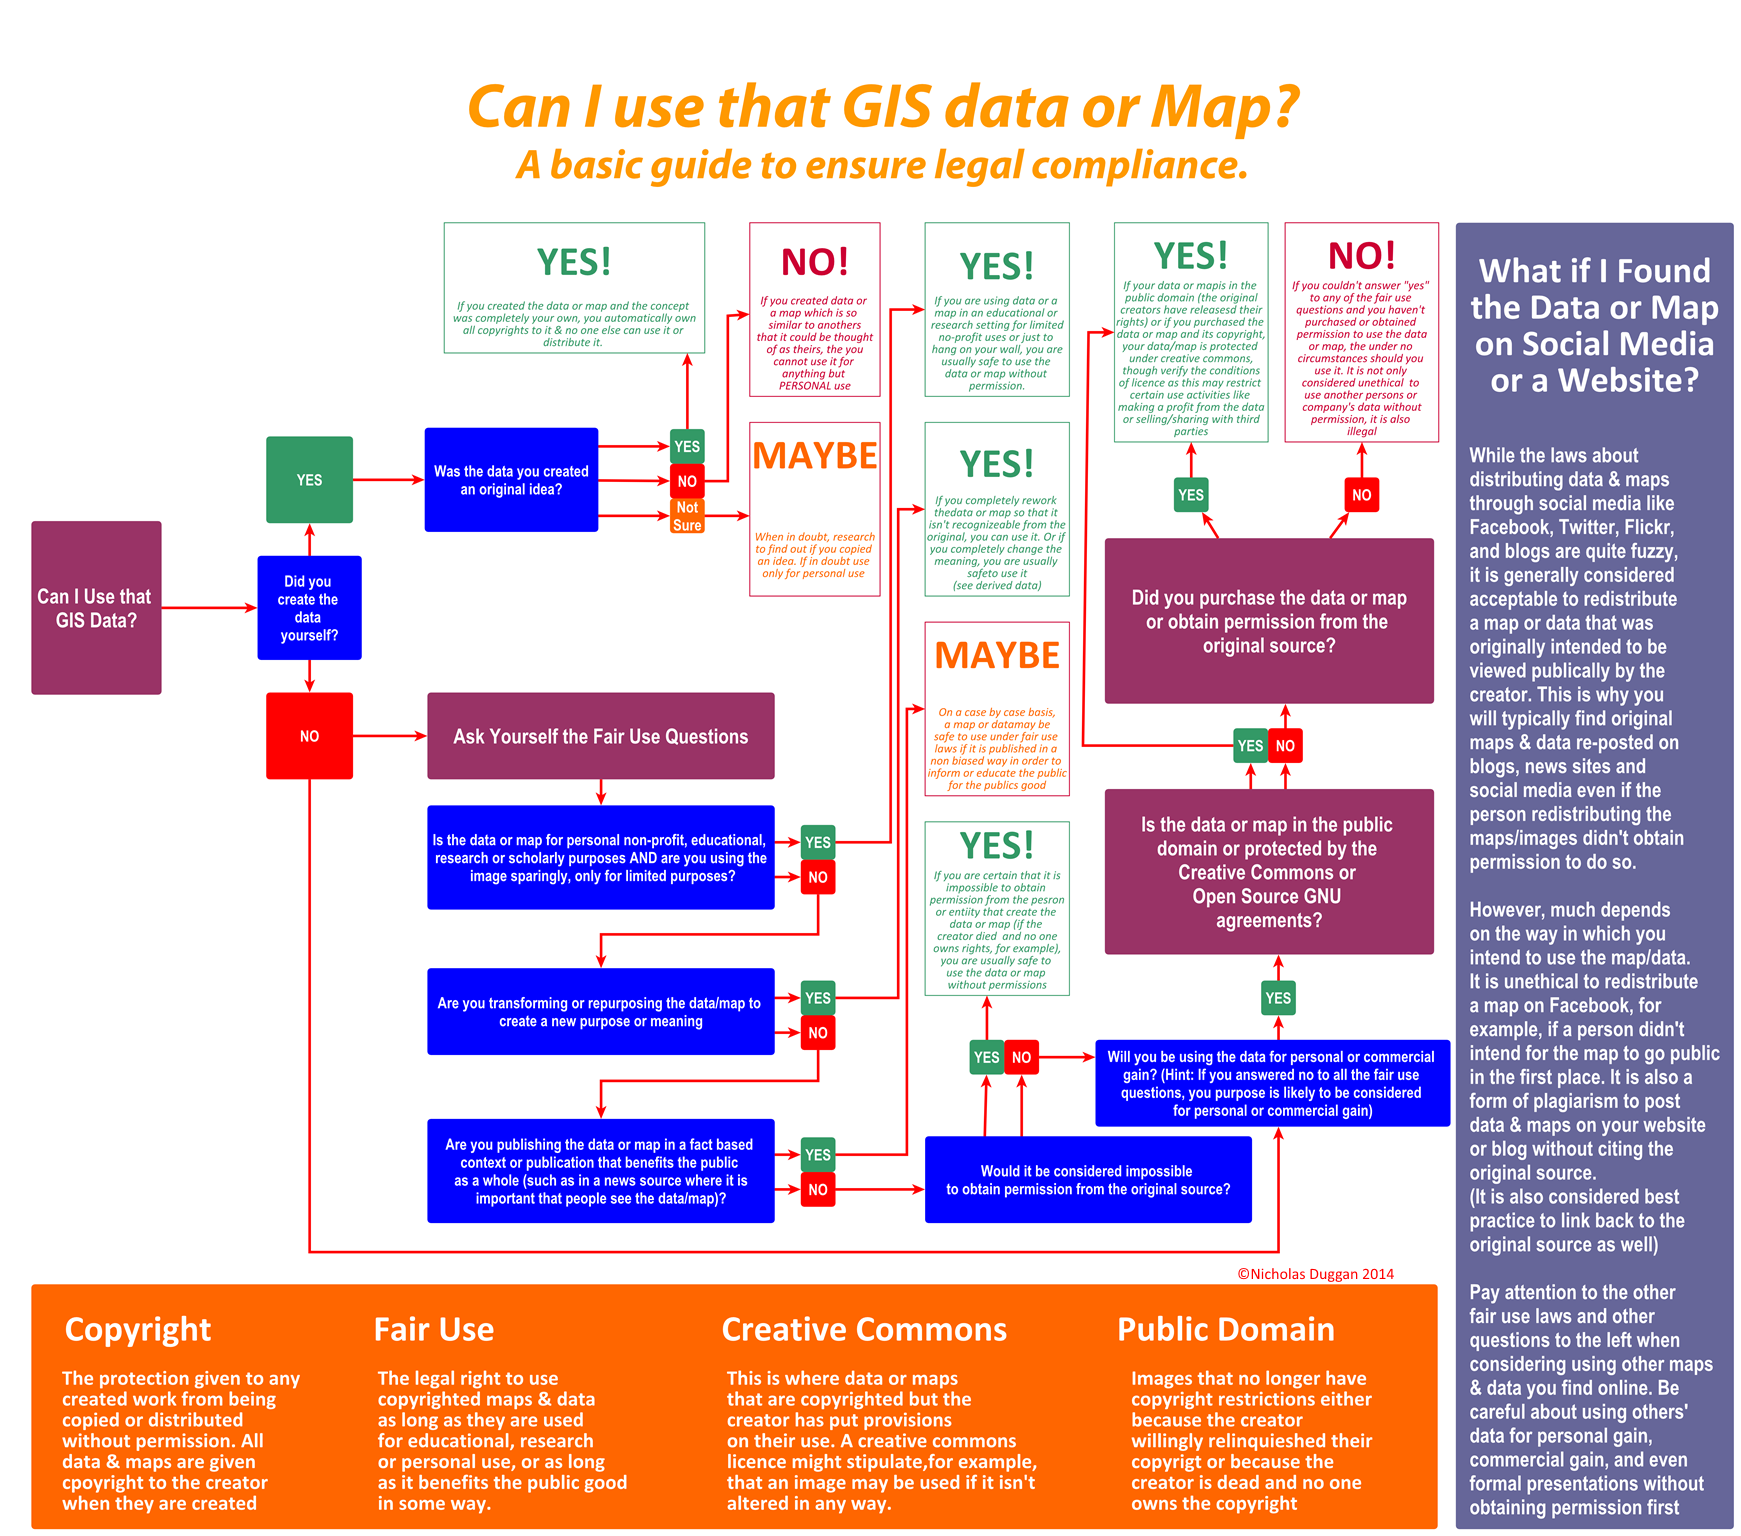 Can I Use That GIS Data or Map? - xyHt Gis Map Data on information systems, geography map, earth remote sensing, spatial analysis, contour line, sap data map, geographic coordinate system, information systems data map, database data map, gis day, map projection, global positioning system, history map, soil data map, gis icons, data mining, gis applications, marketing data map, enterprise resource planning, data model, 3d data map, computer aided design, crm data map, training map, erp data map, google earth map, crime mapping, home map, nautical charts map, gis software,